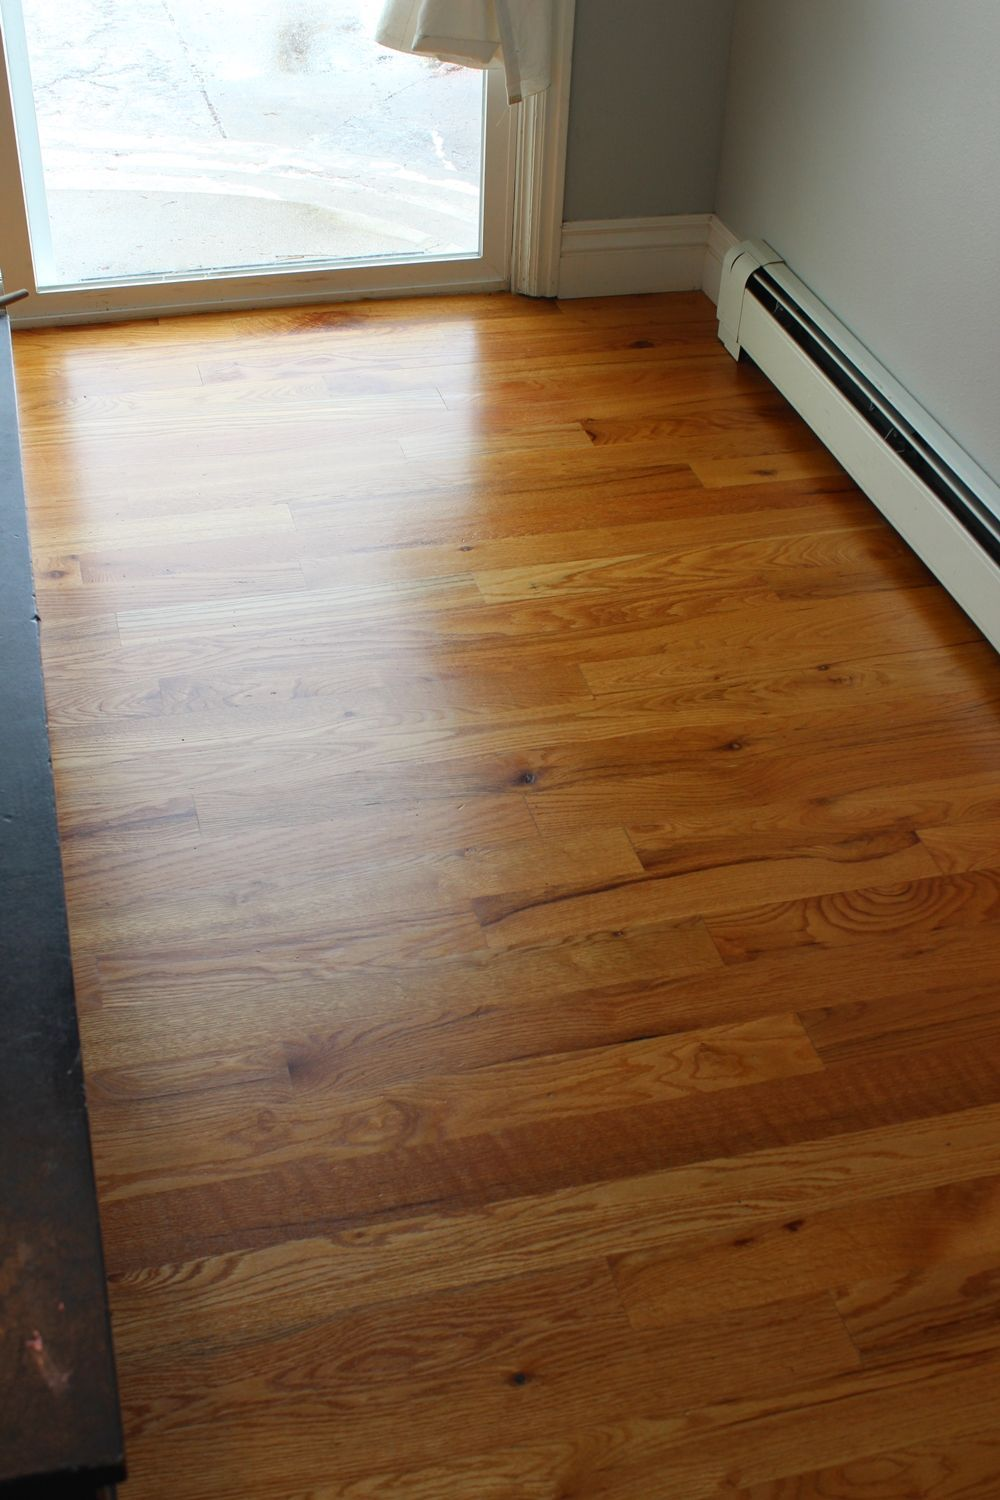 Wood floor cleaned with natural products